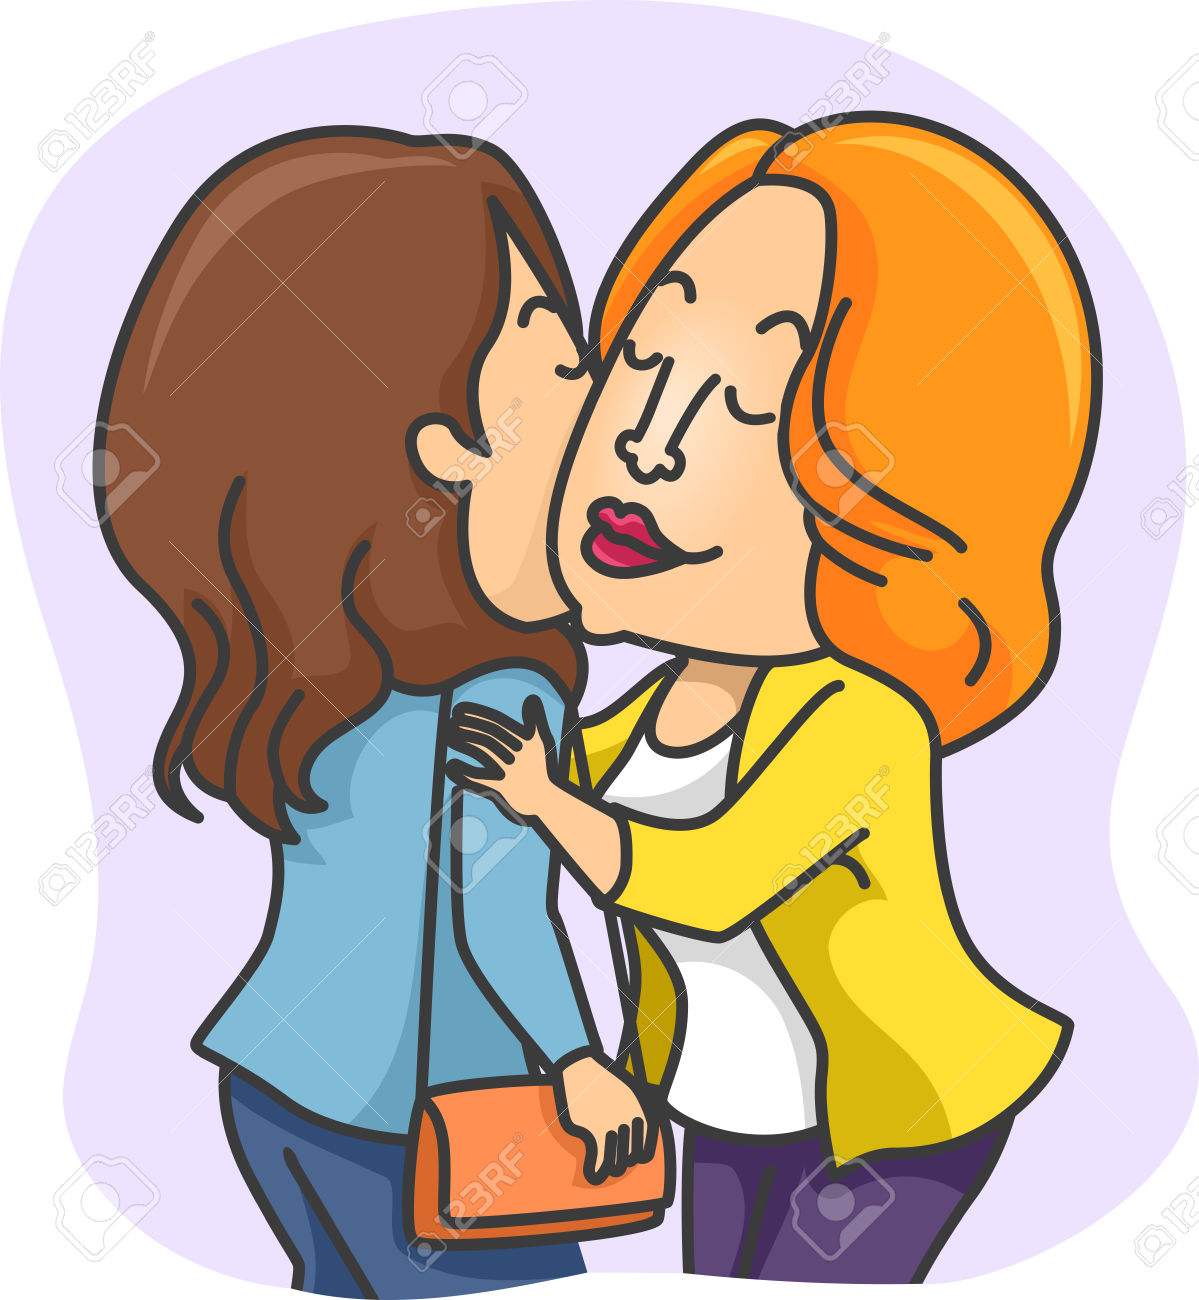 Illustration Of Women Greeting Each Other With A Kiss On The.